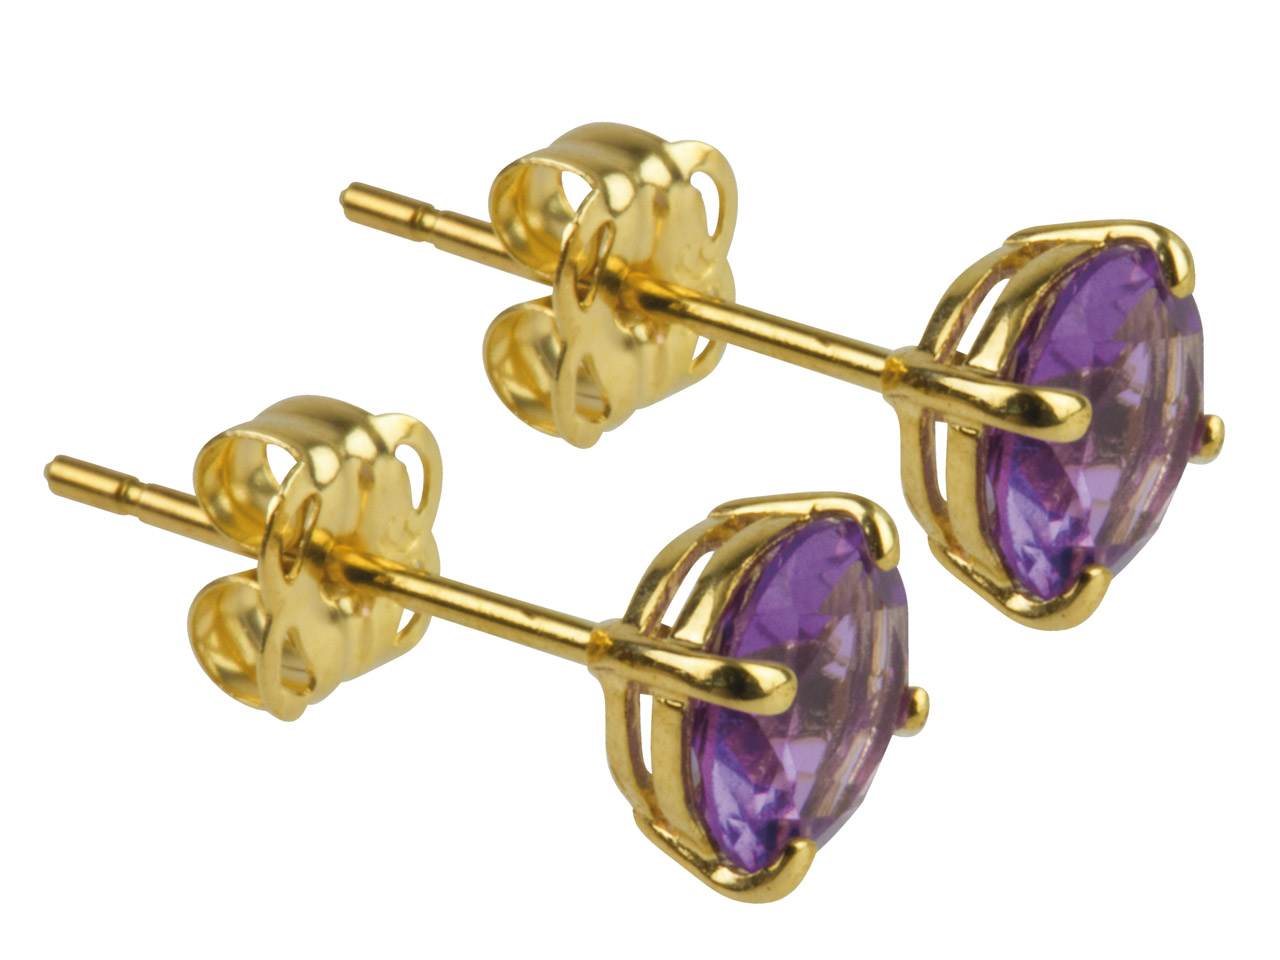 9ct Yellow Birthstone Earrings 5mm Round Amethyst - February